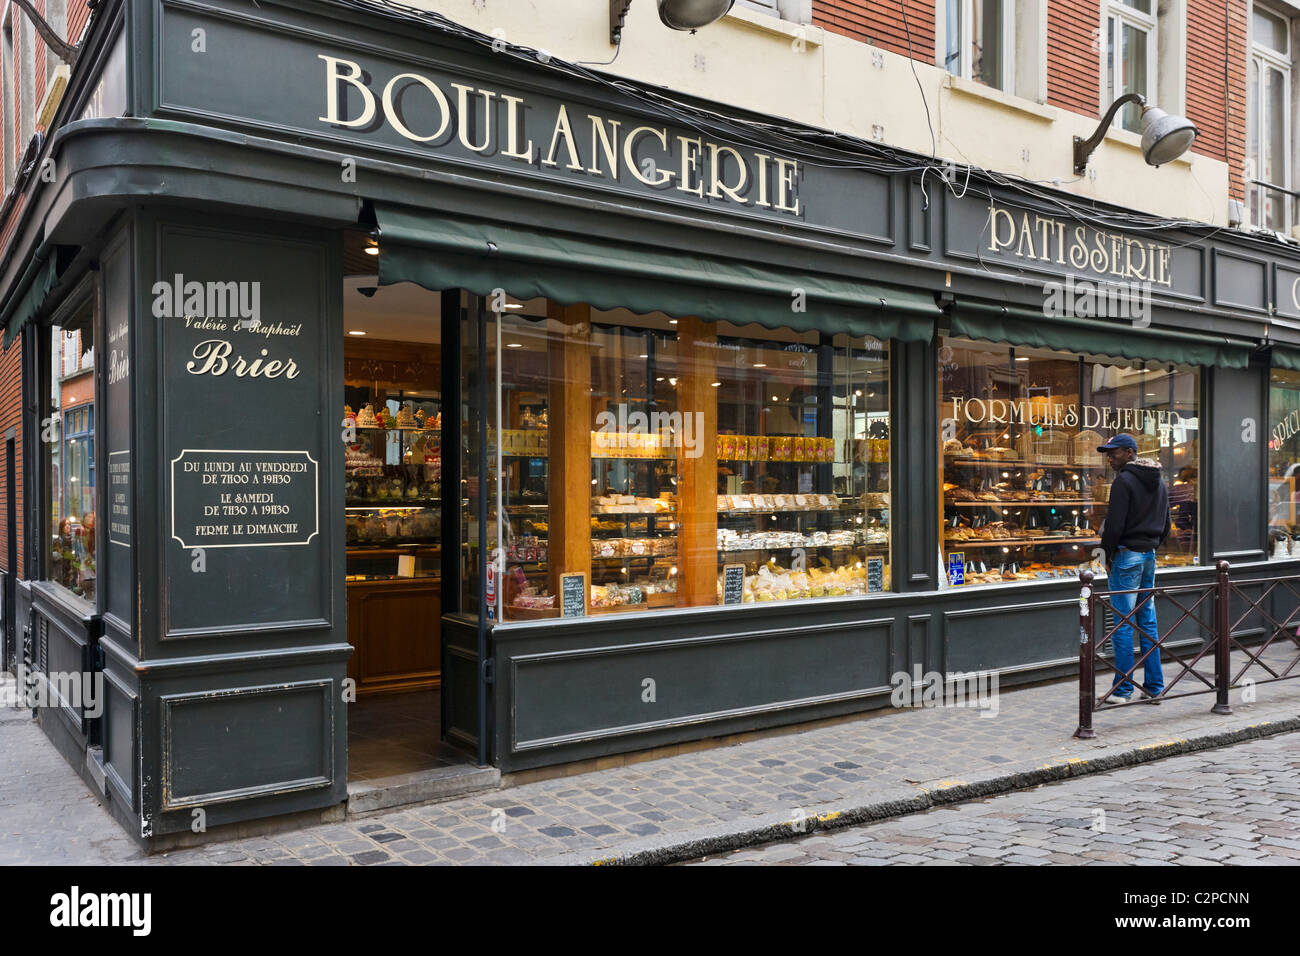 Traditional Boulangerie Patisserie On A Typical Street